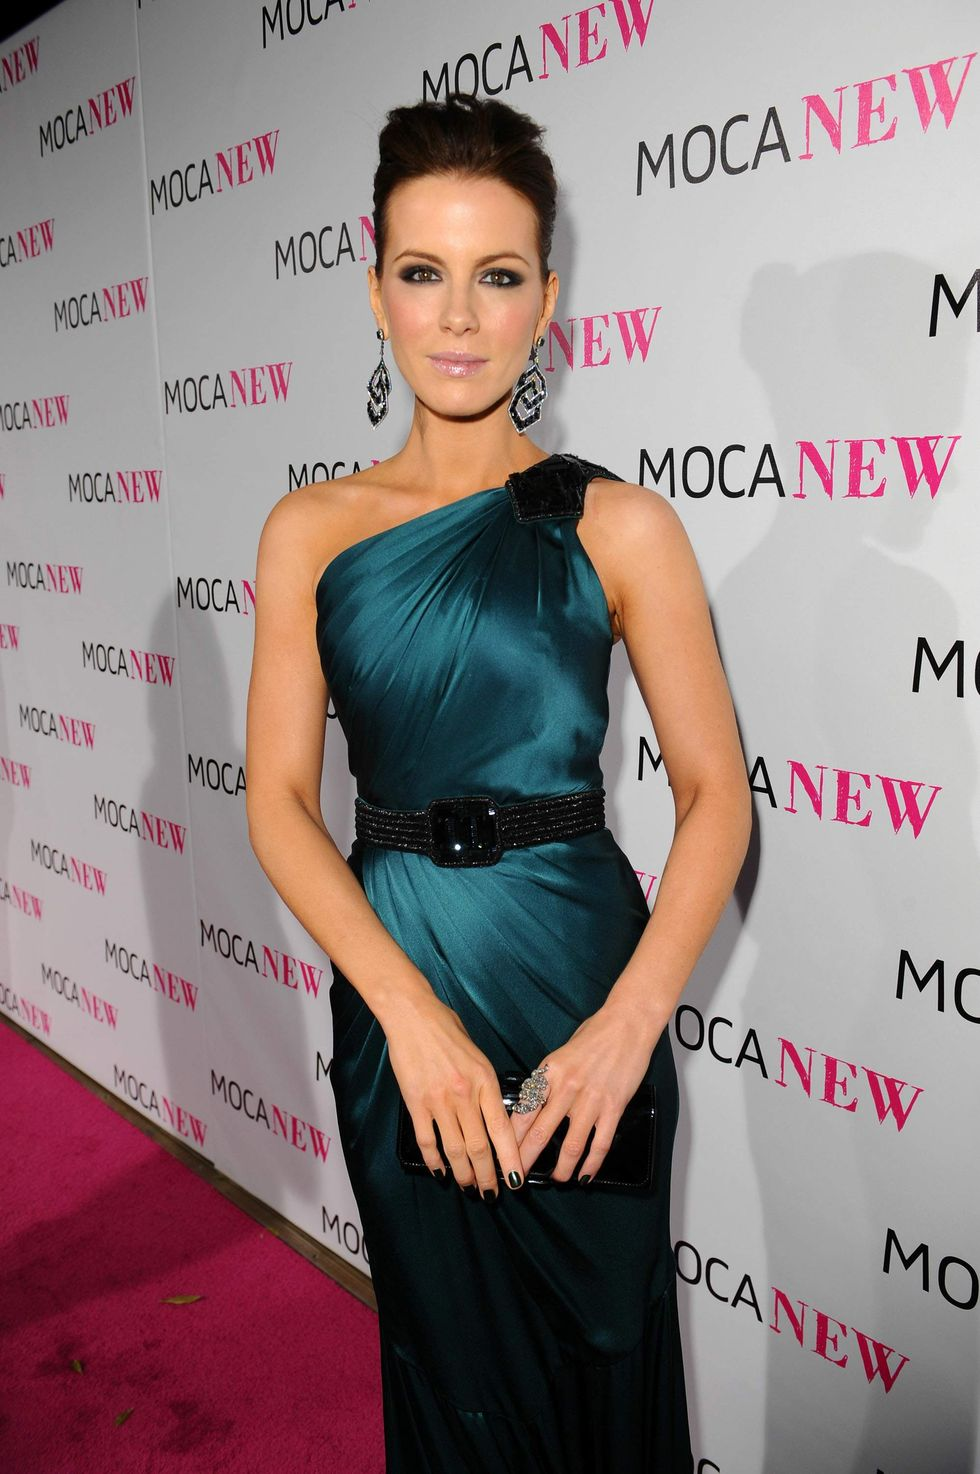 kate-beckinsale-moca-new-30th-anniversary-gala-in-los-angeles-01